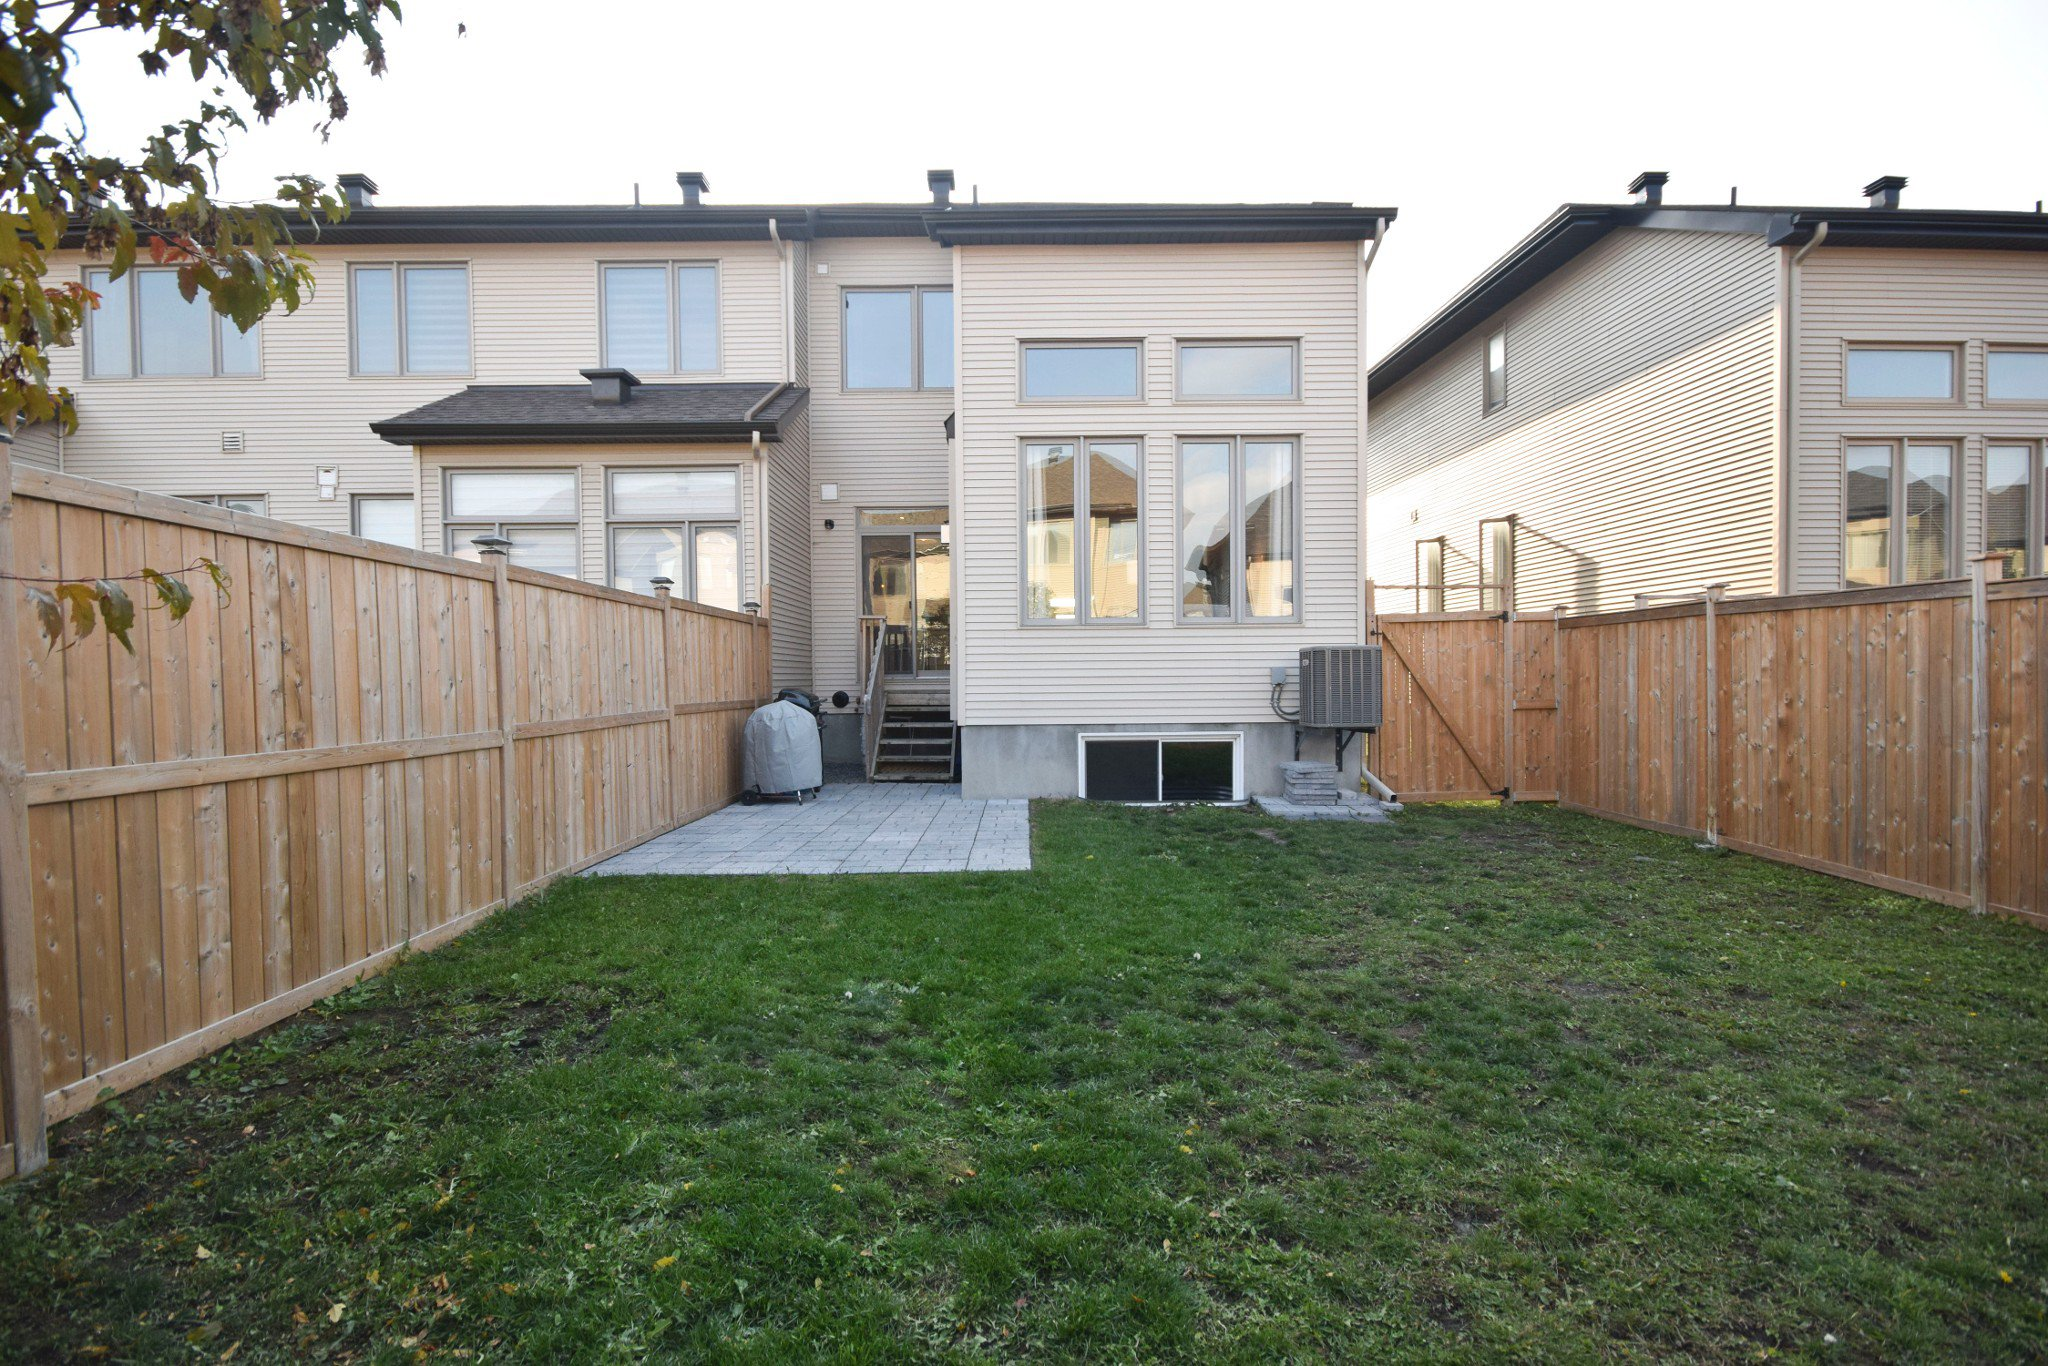 Photo 64: Photos: 131 Popplewell Crescent in Ottawa: Cedargrove / Fraserdale House for sale (Barrhaven)  : MLS®# 1130335